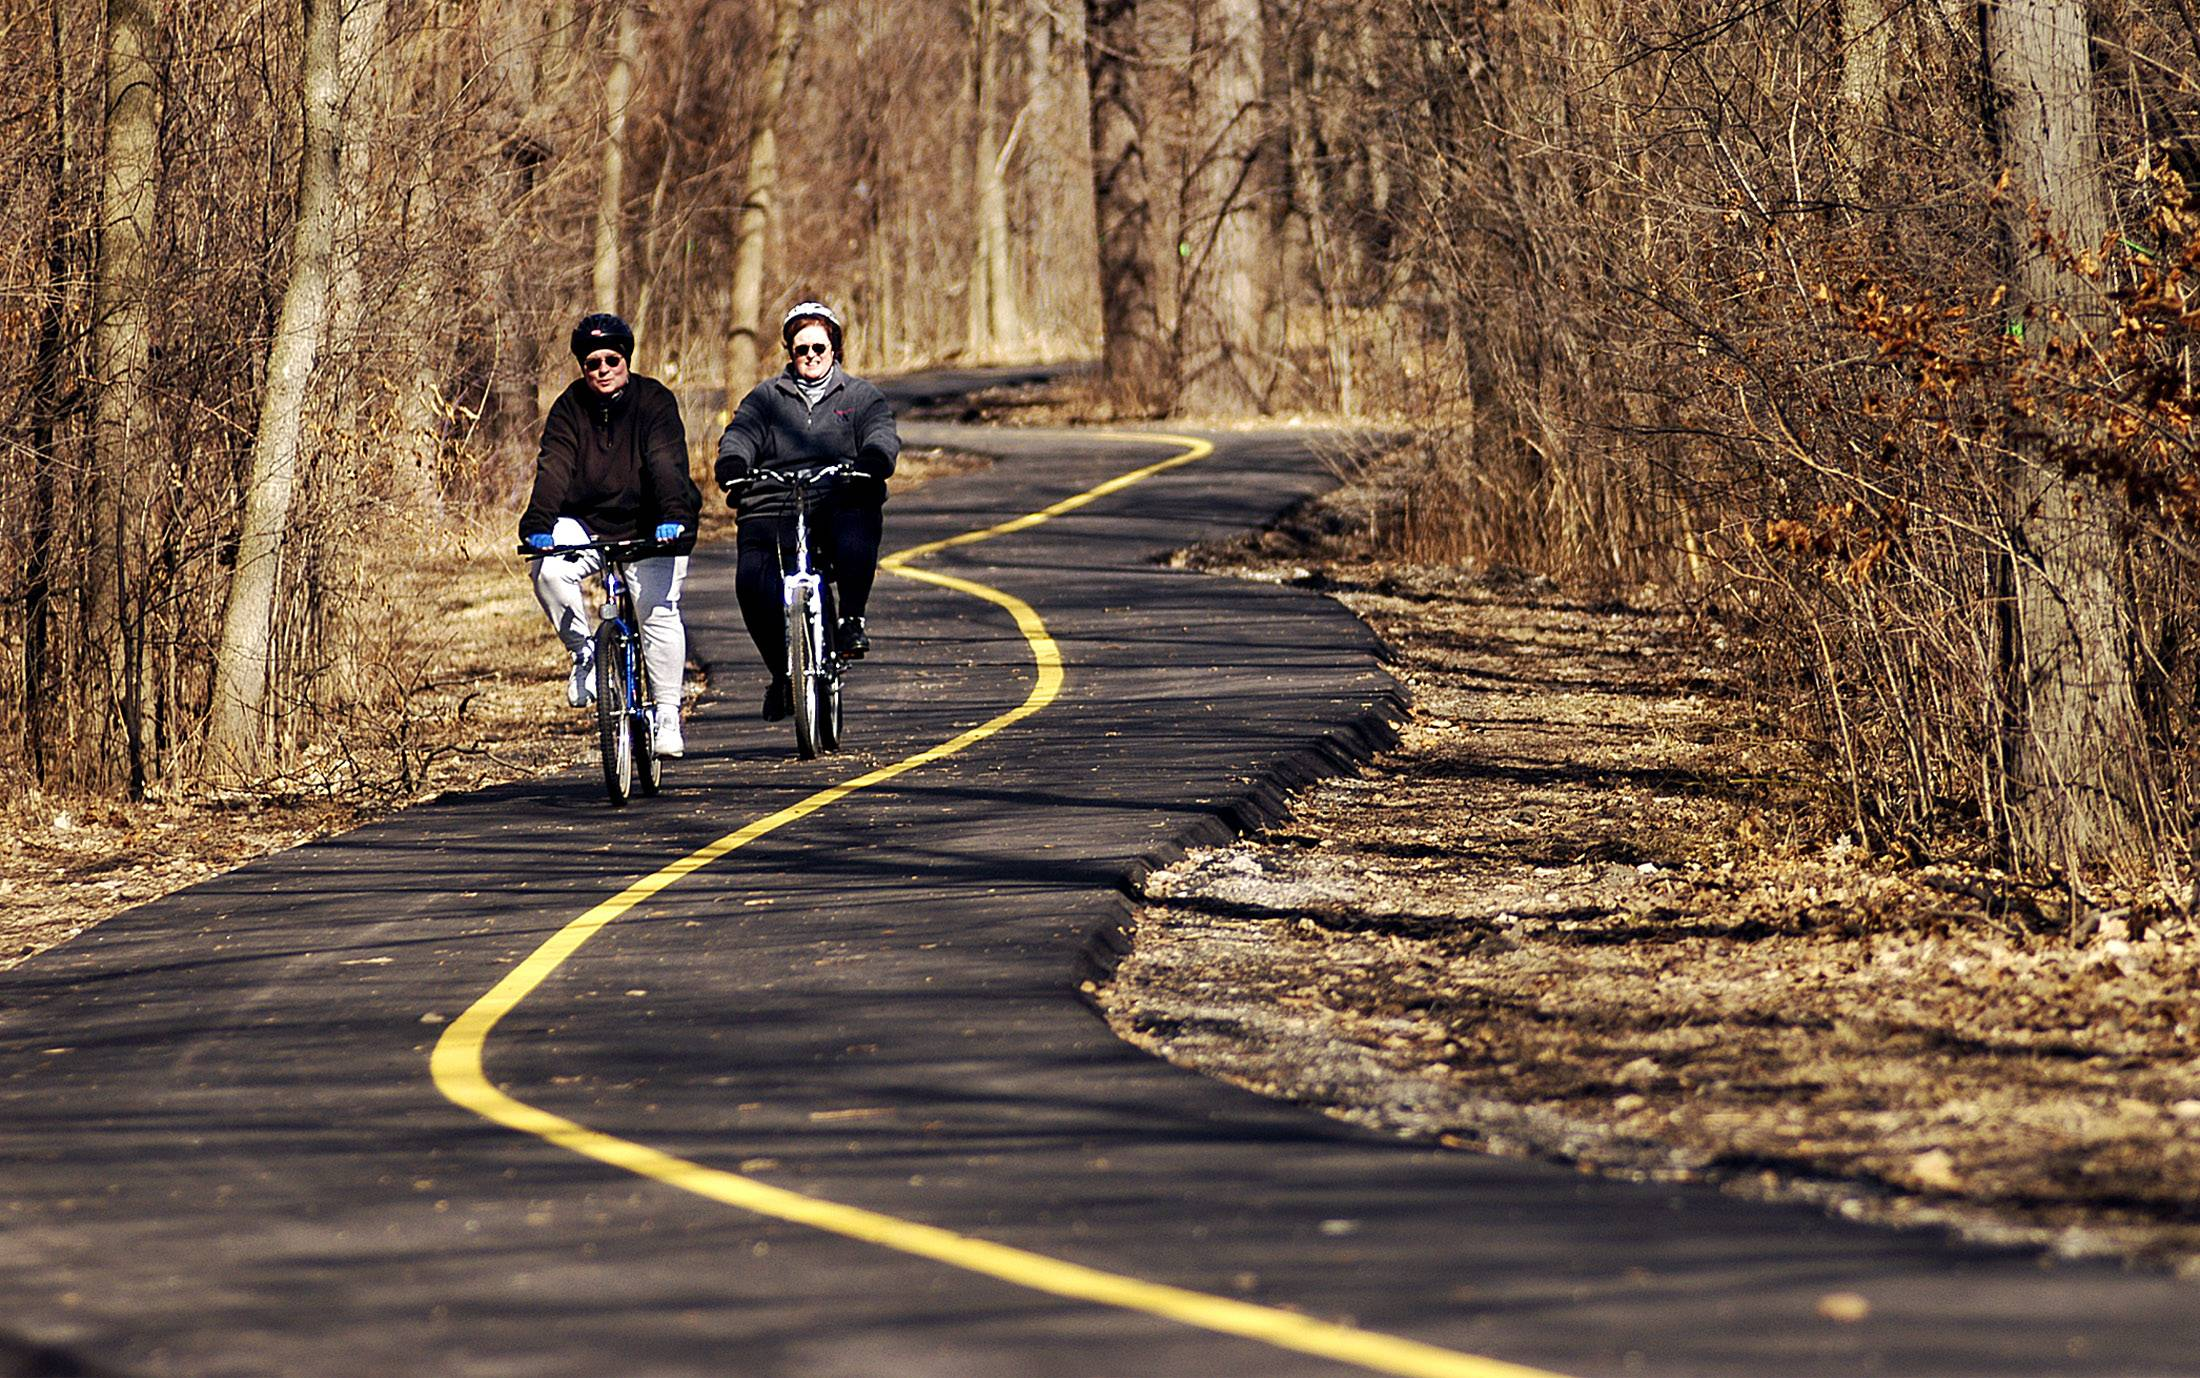 Top trails and roads to ride your bike in the suburbs